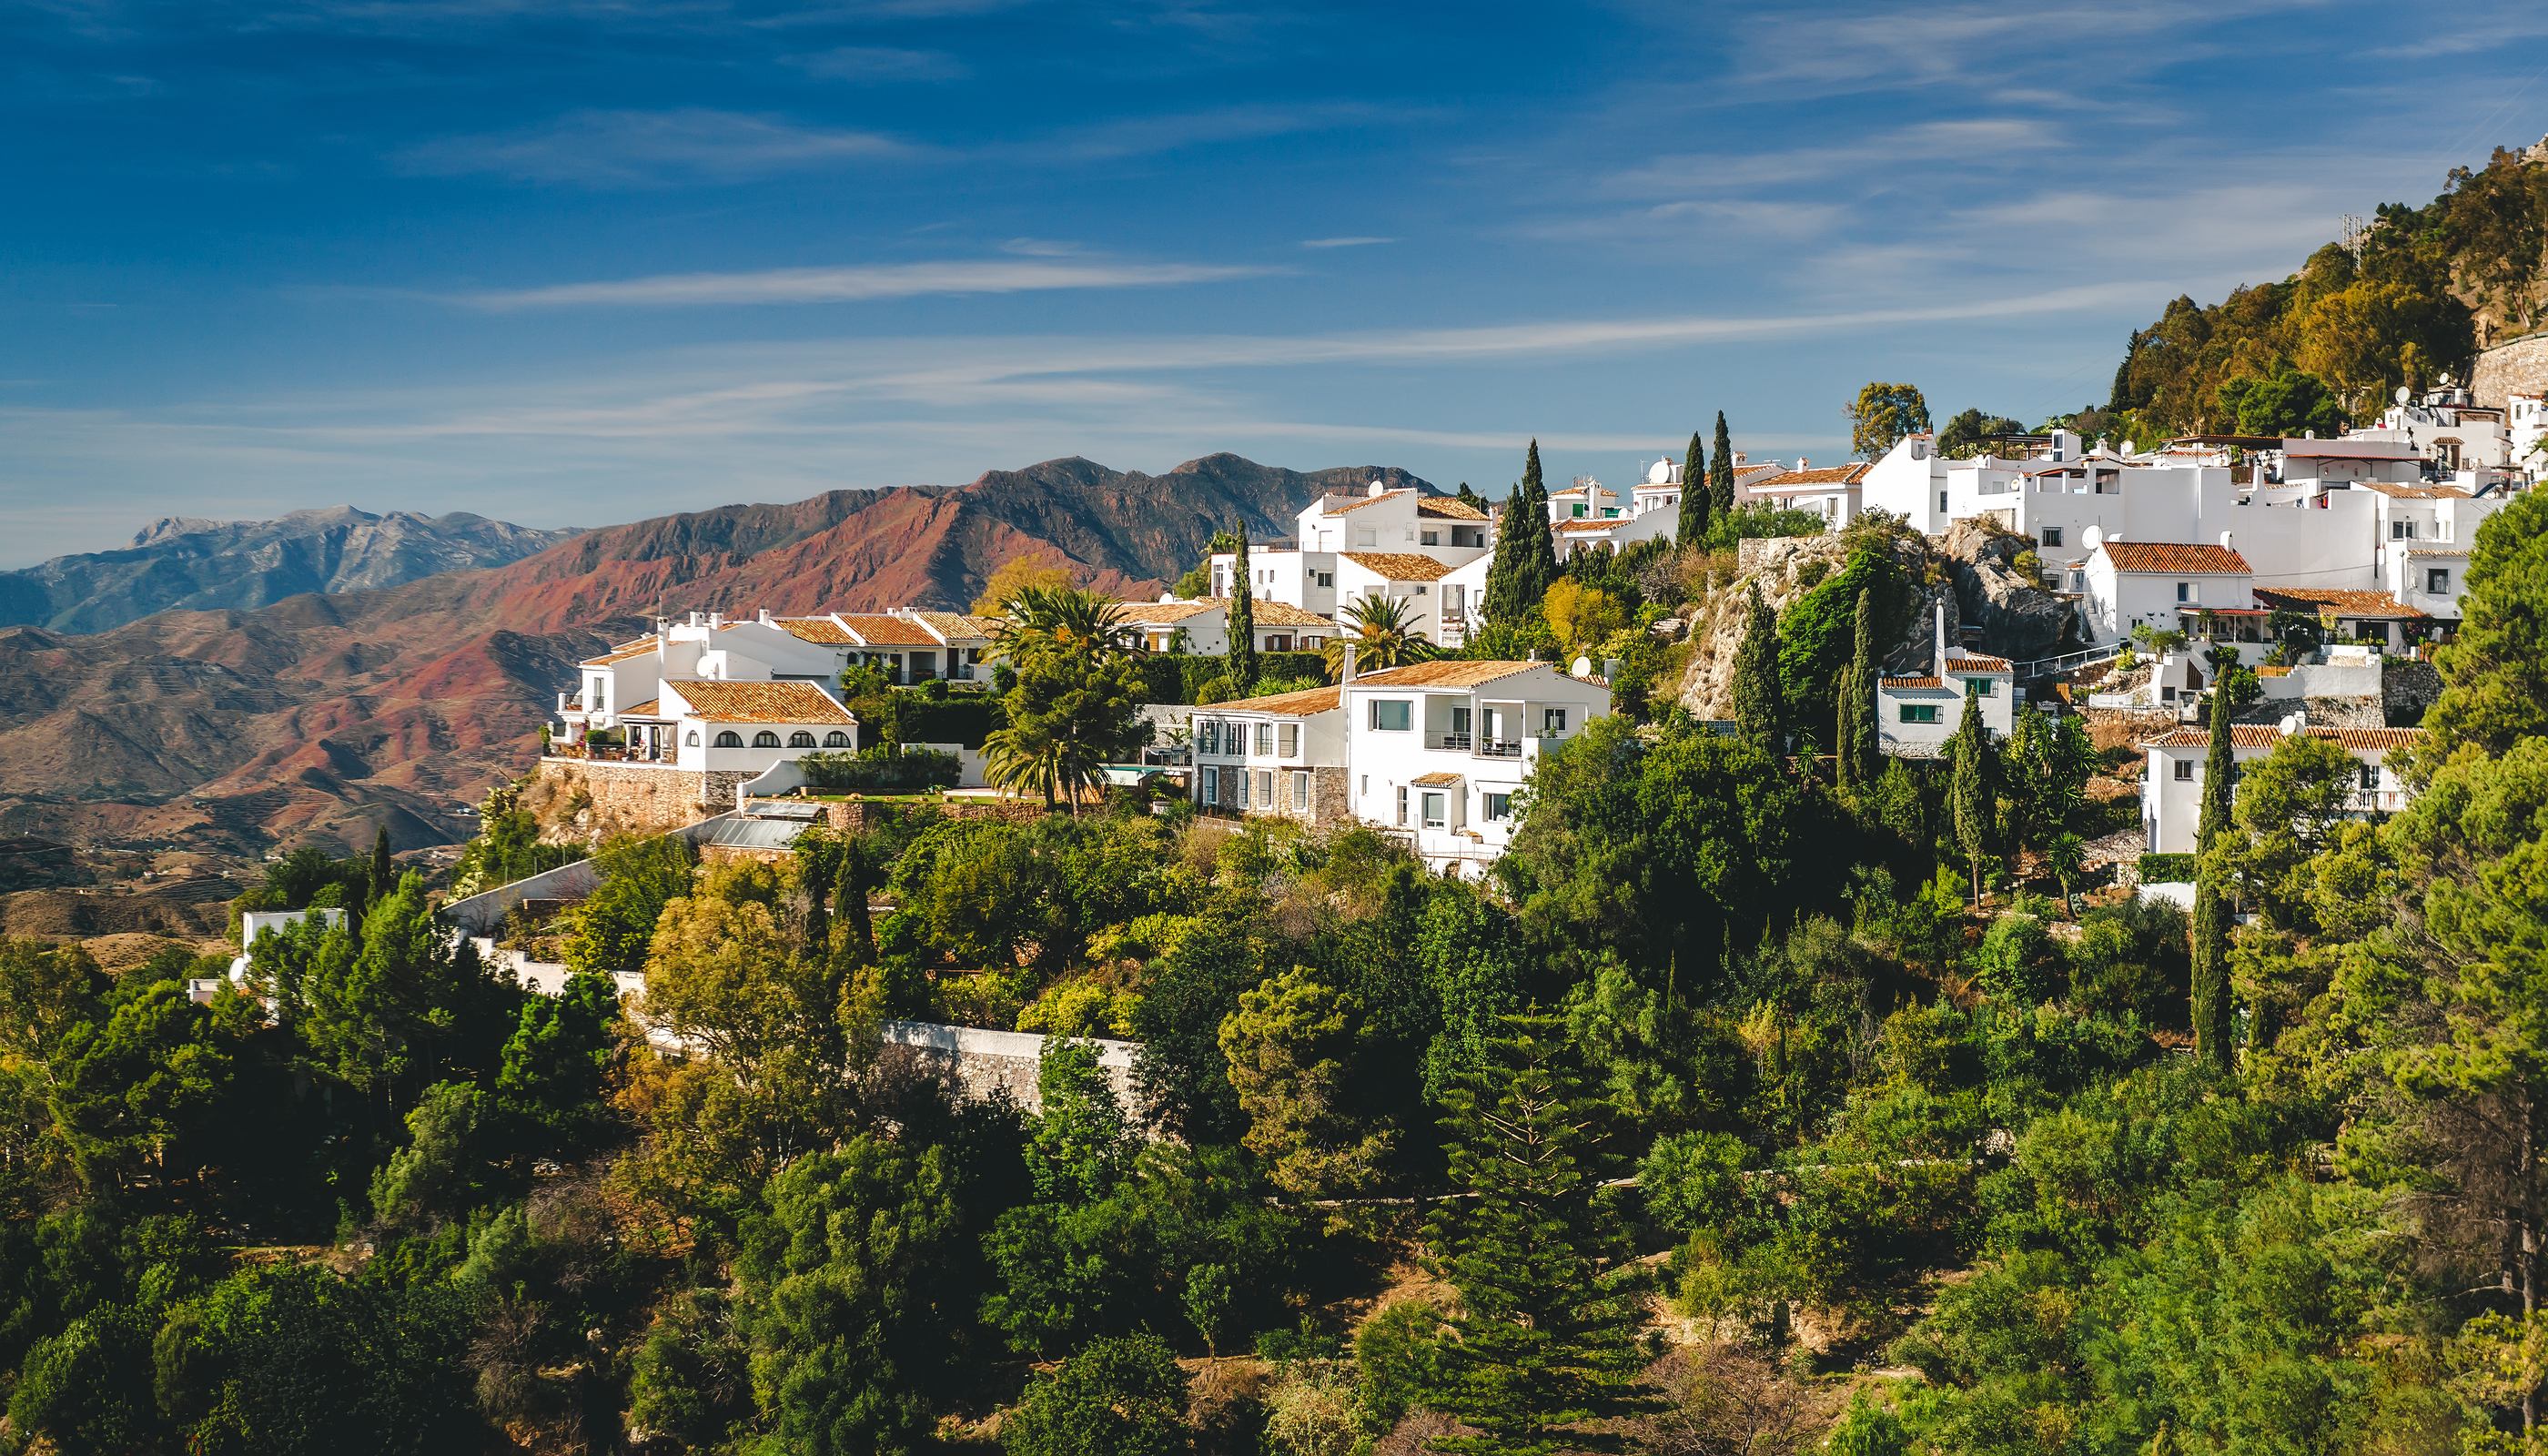 Charming Little White Village Of Mijas Pueblo. Costa Del Sol, Andalusia